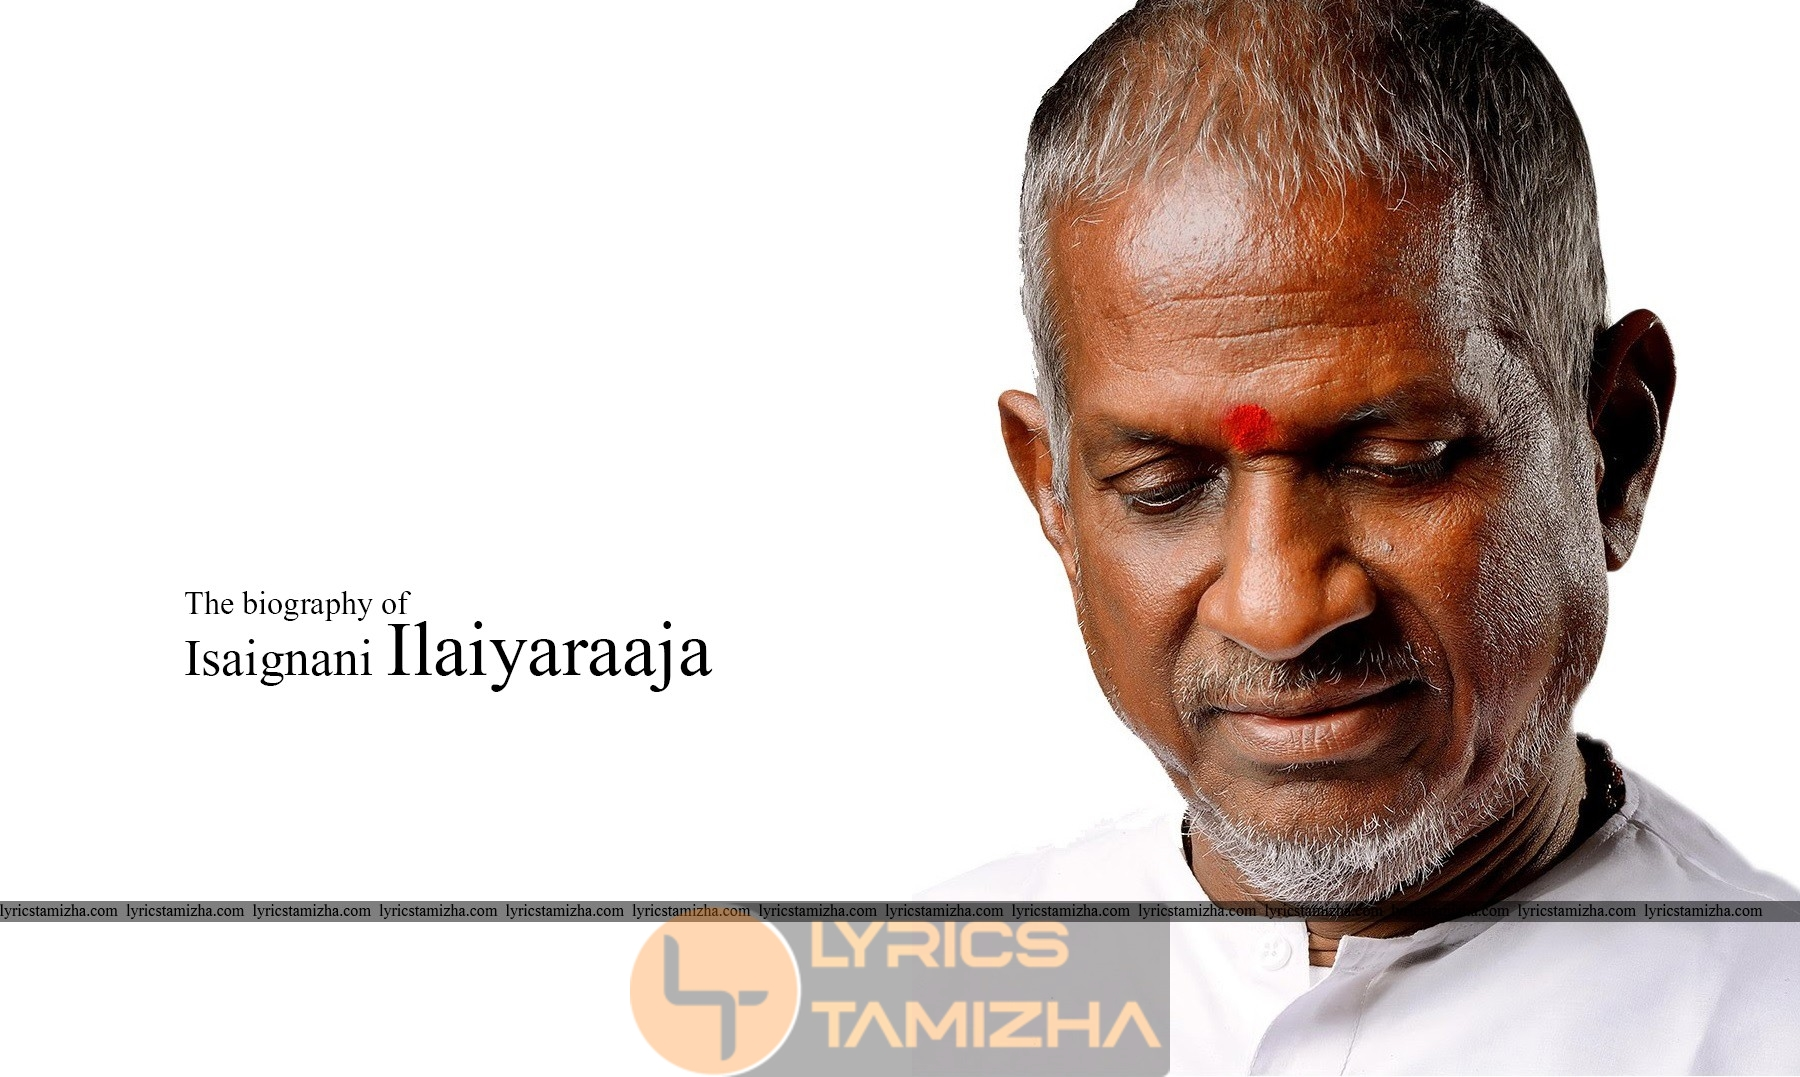 The Biography of Isaignani Ilaiyaraaja